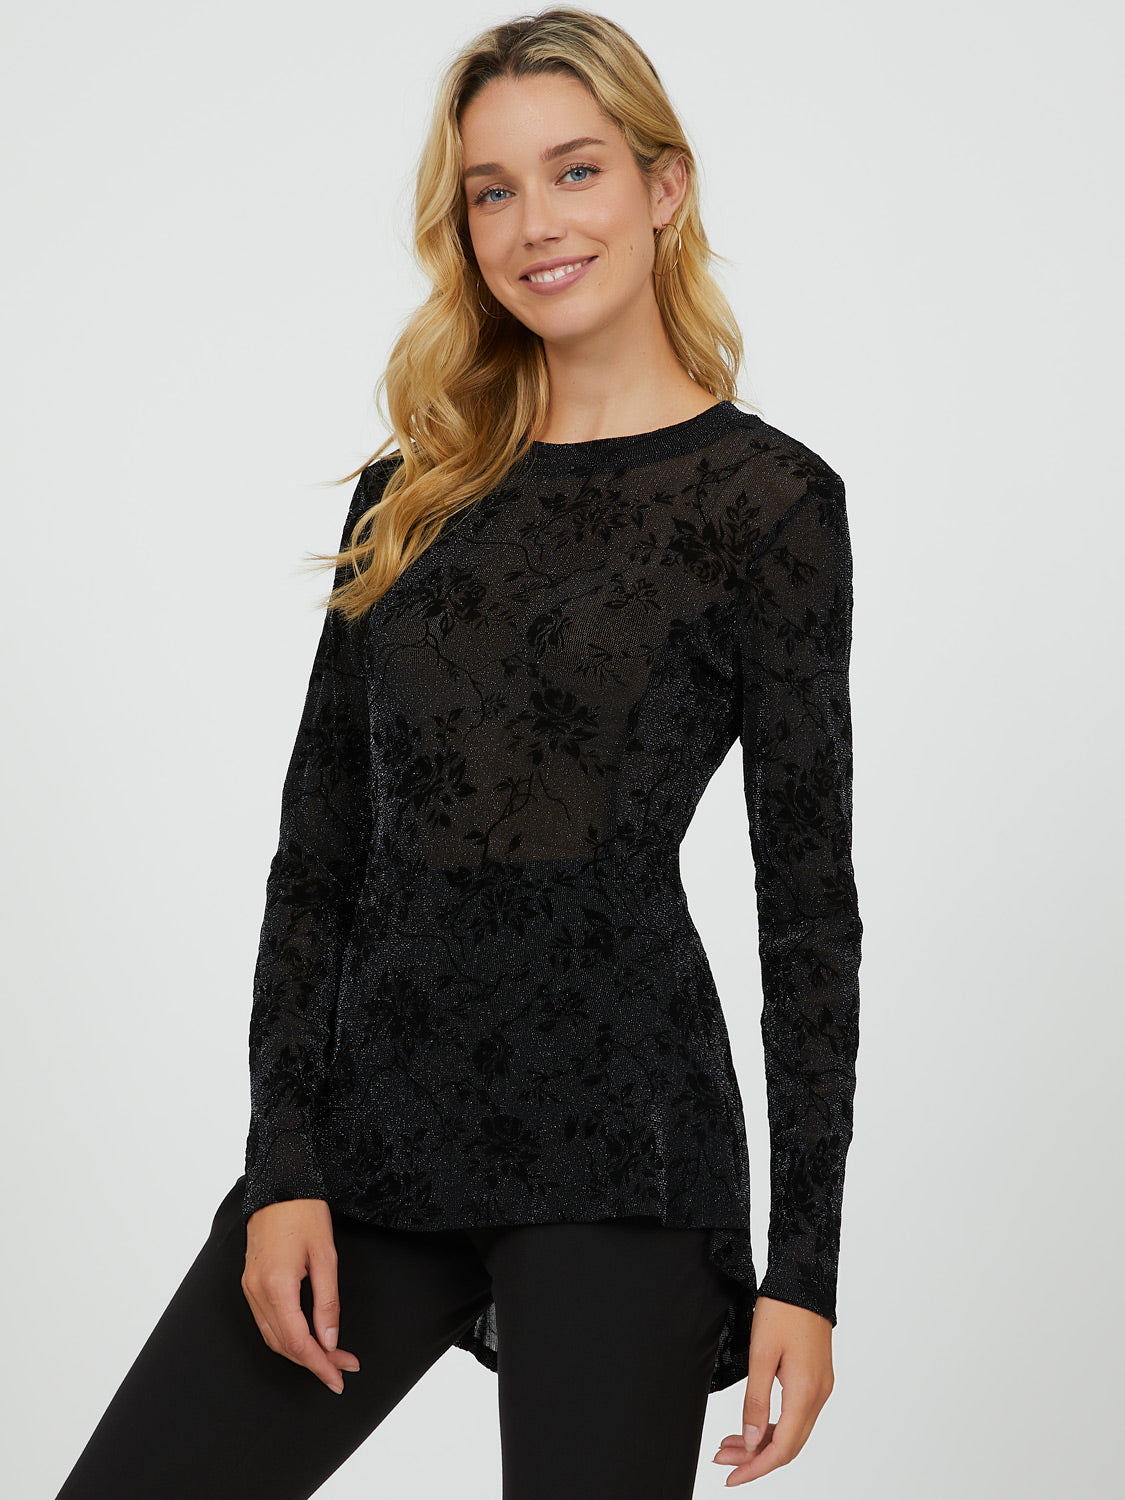 Glitter Mesh High Neck Fit & Flare Top